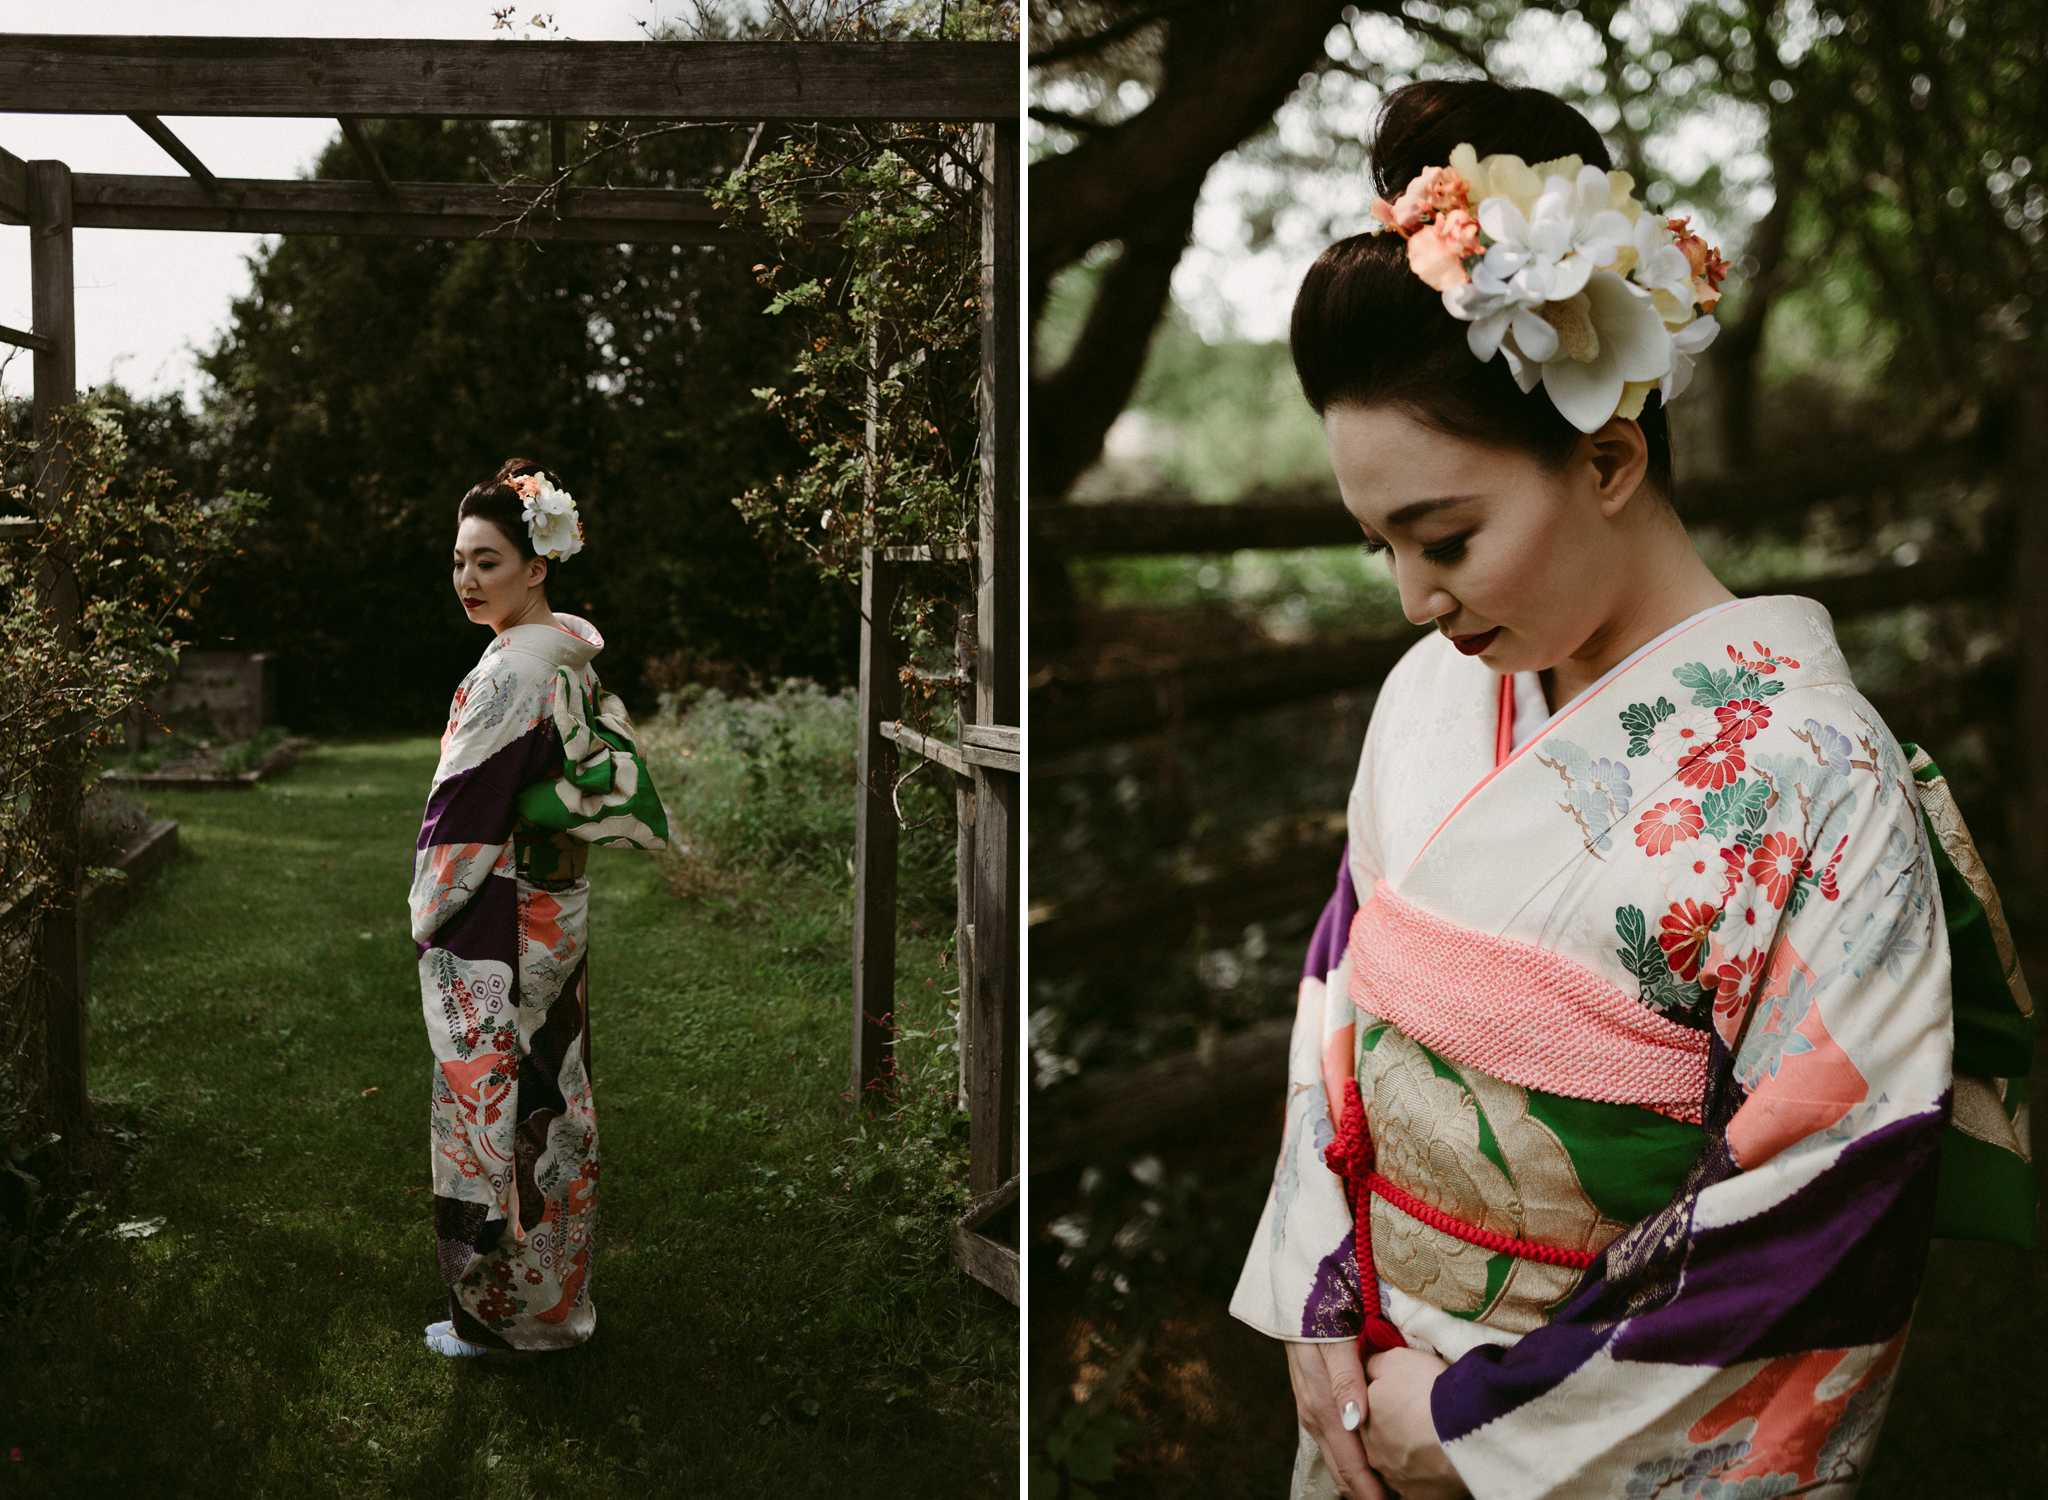 Japanese woman in kimono in garden